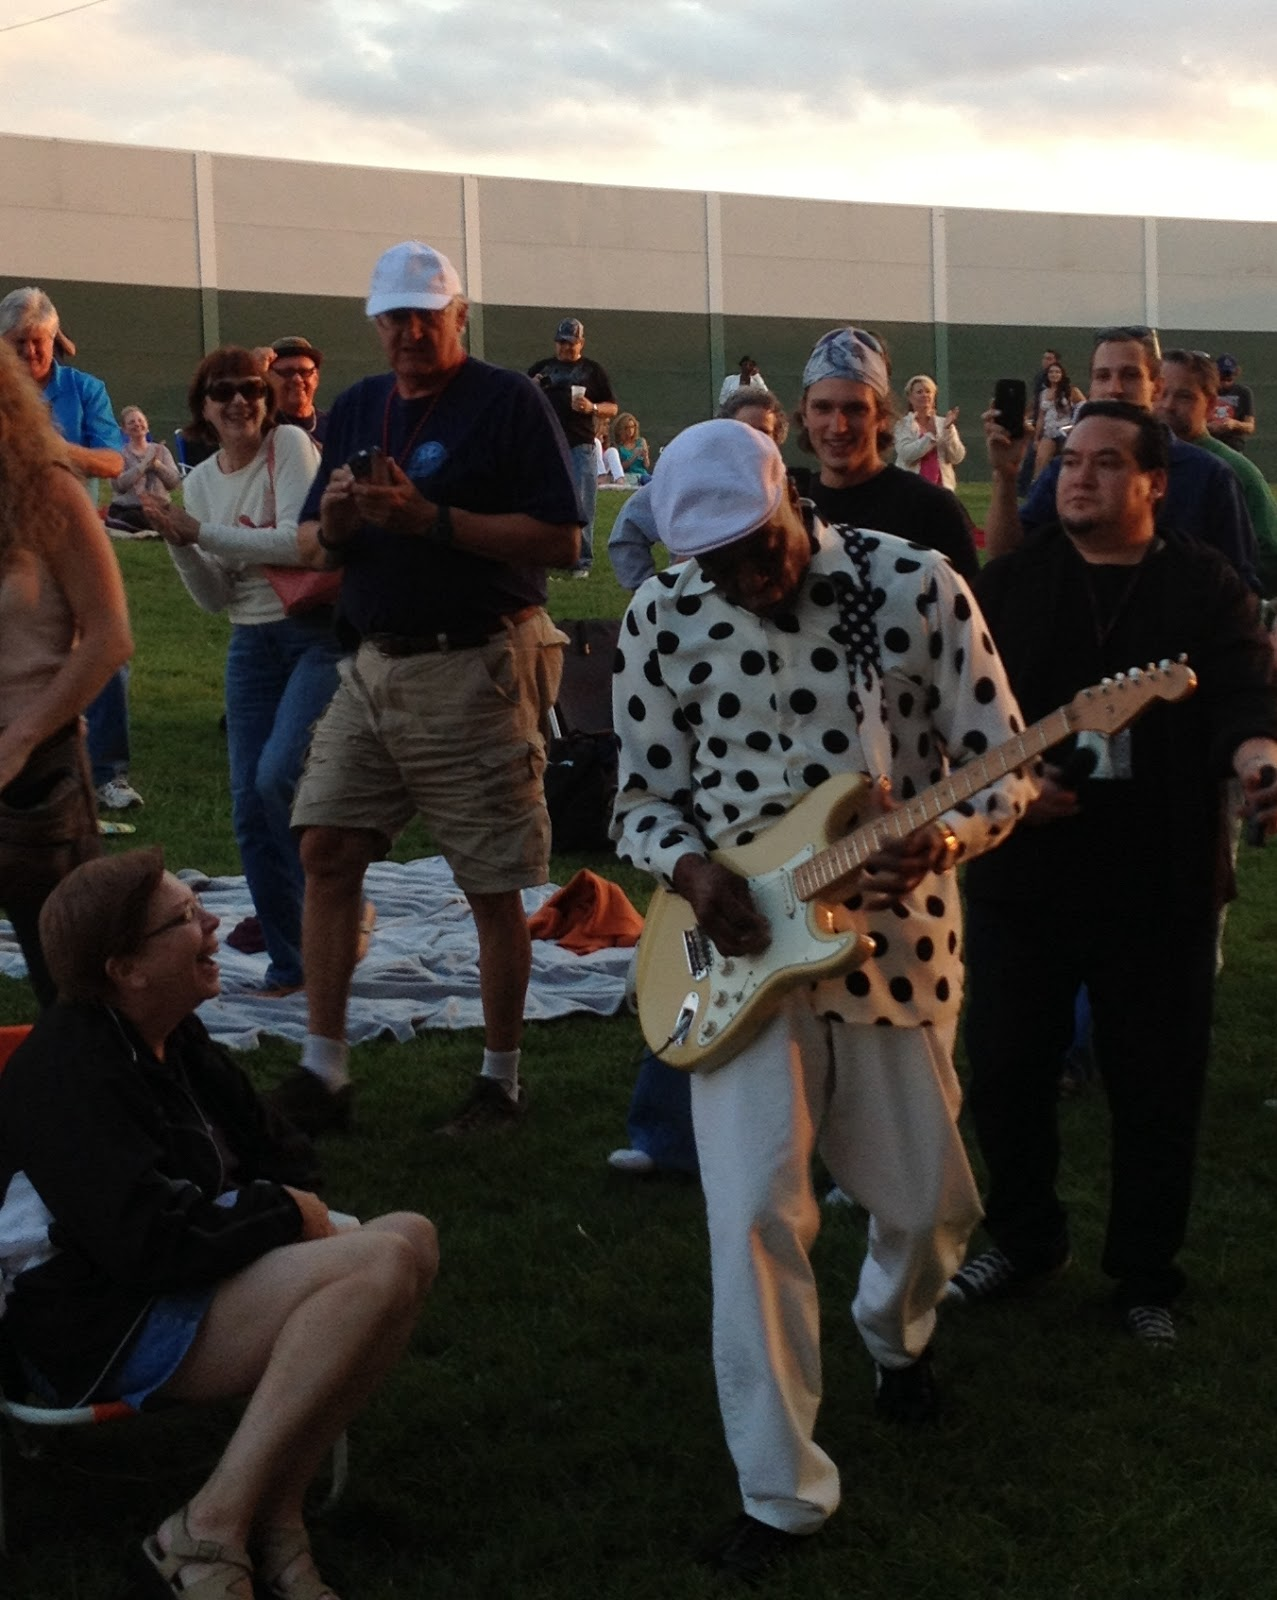 Concert Review George Thorogood With Buddy Guy At Freedom